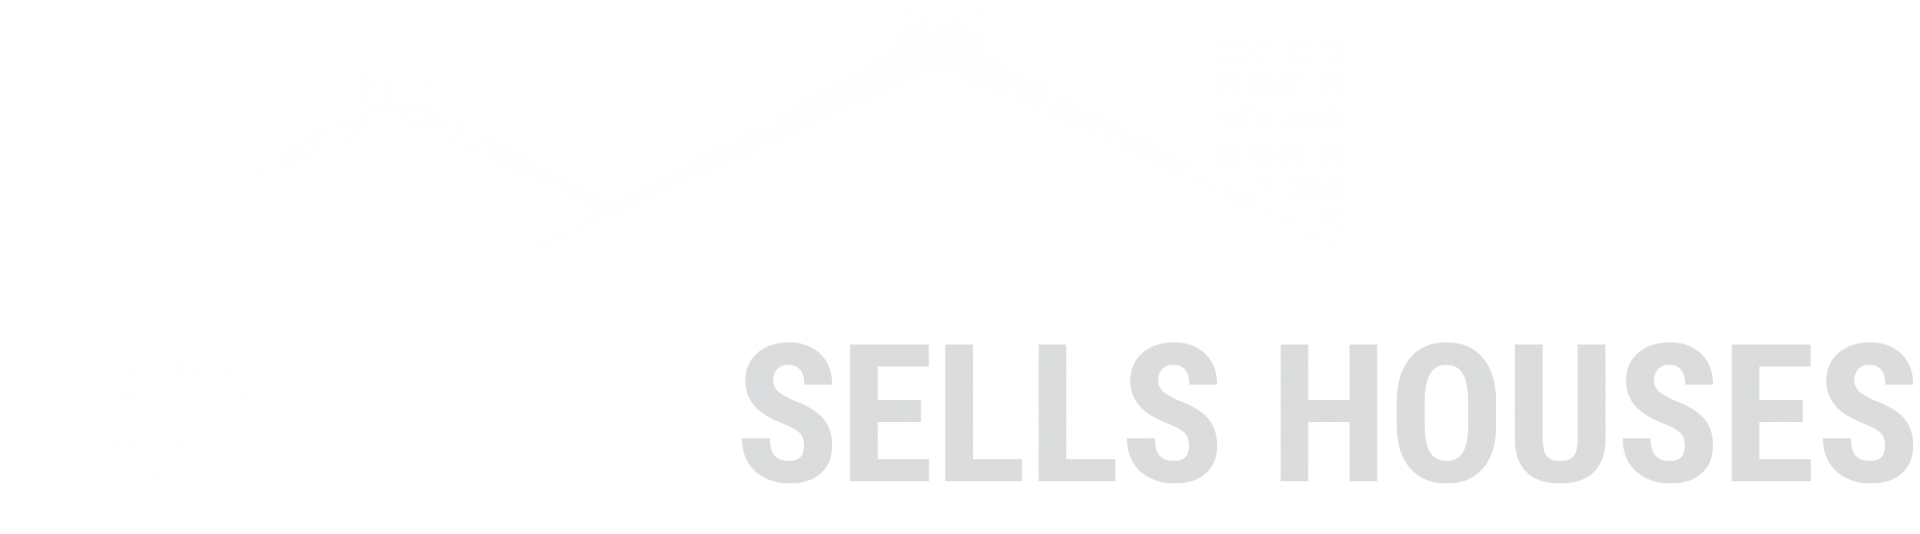 Cyndie Sells Houses logo